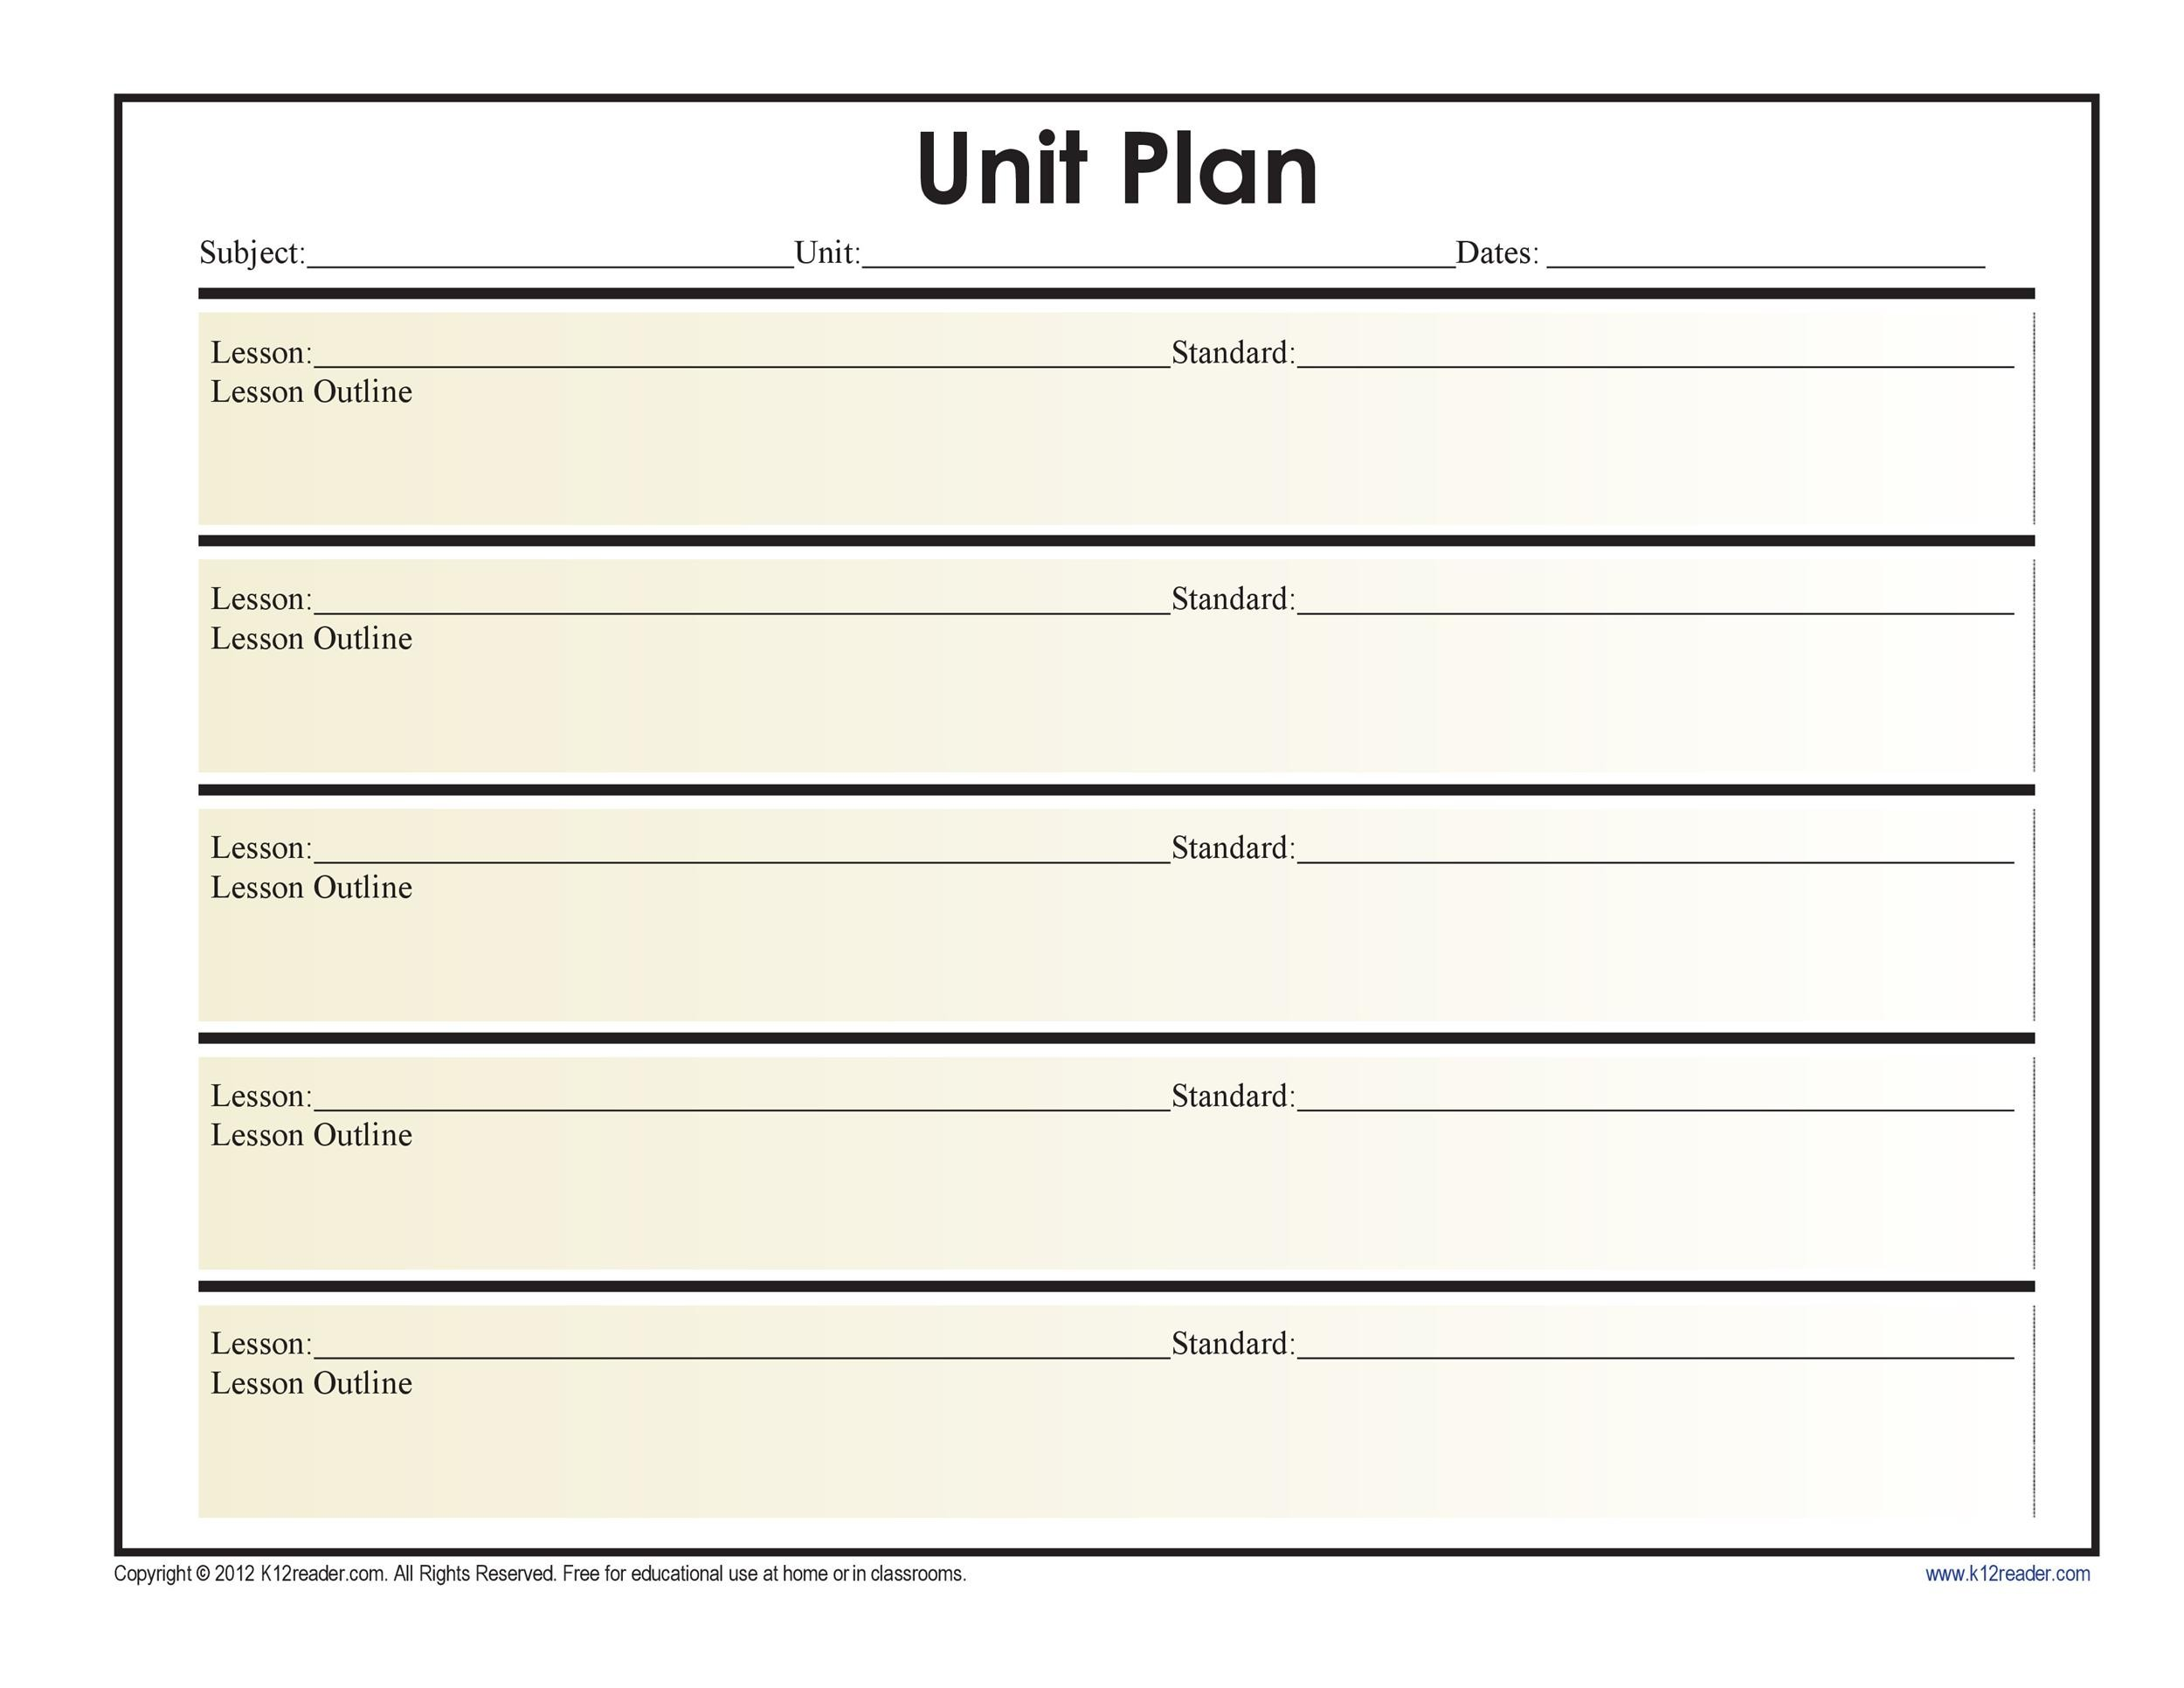 39 Best Unit Plan Templates Word, PDF - Template Lab